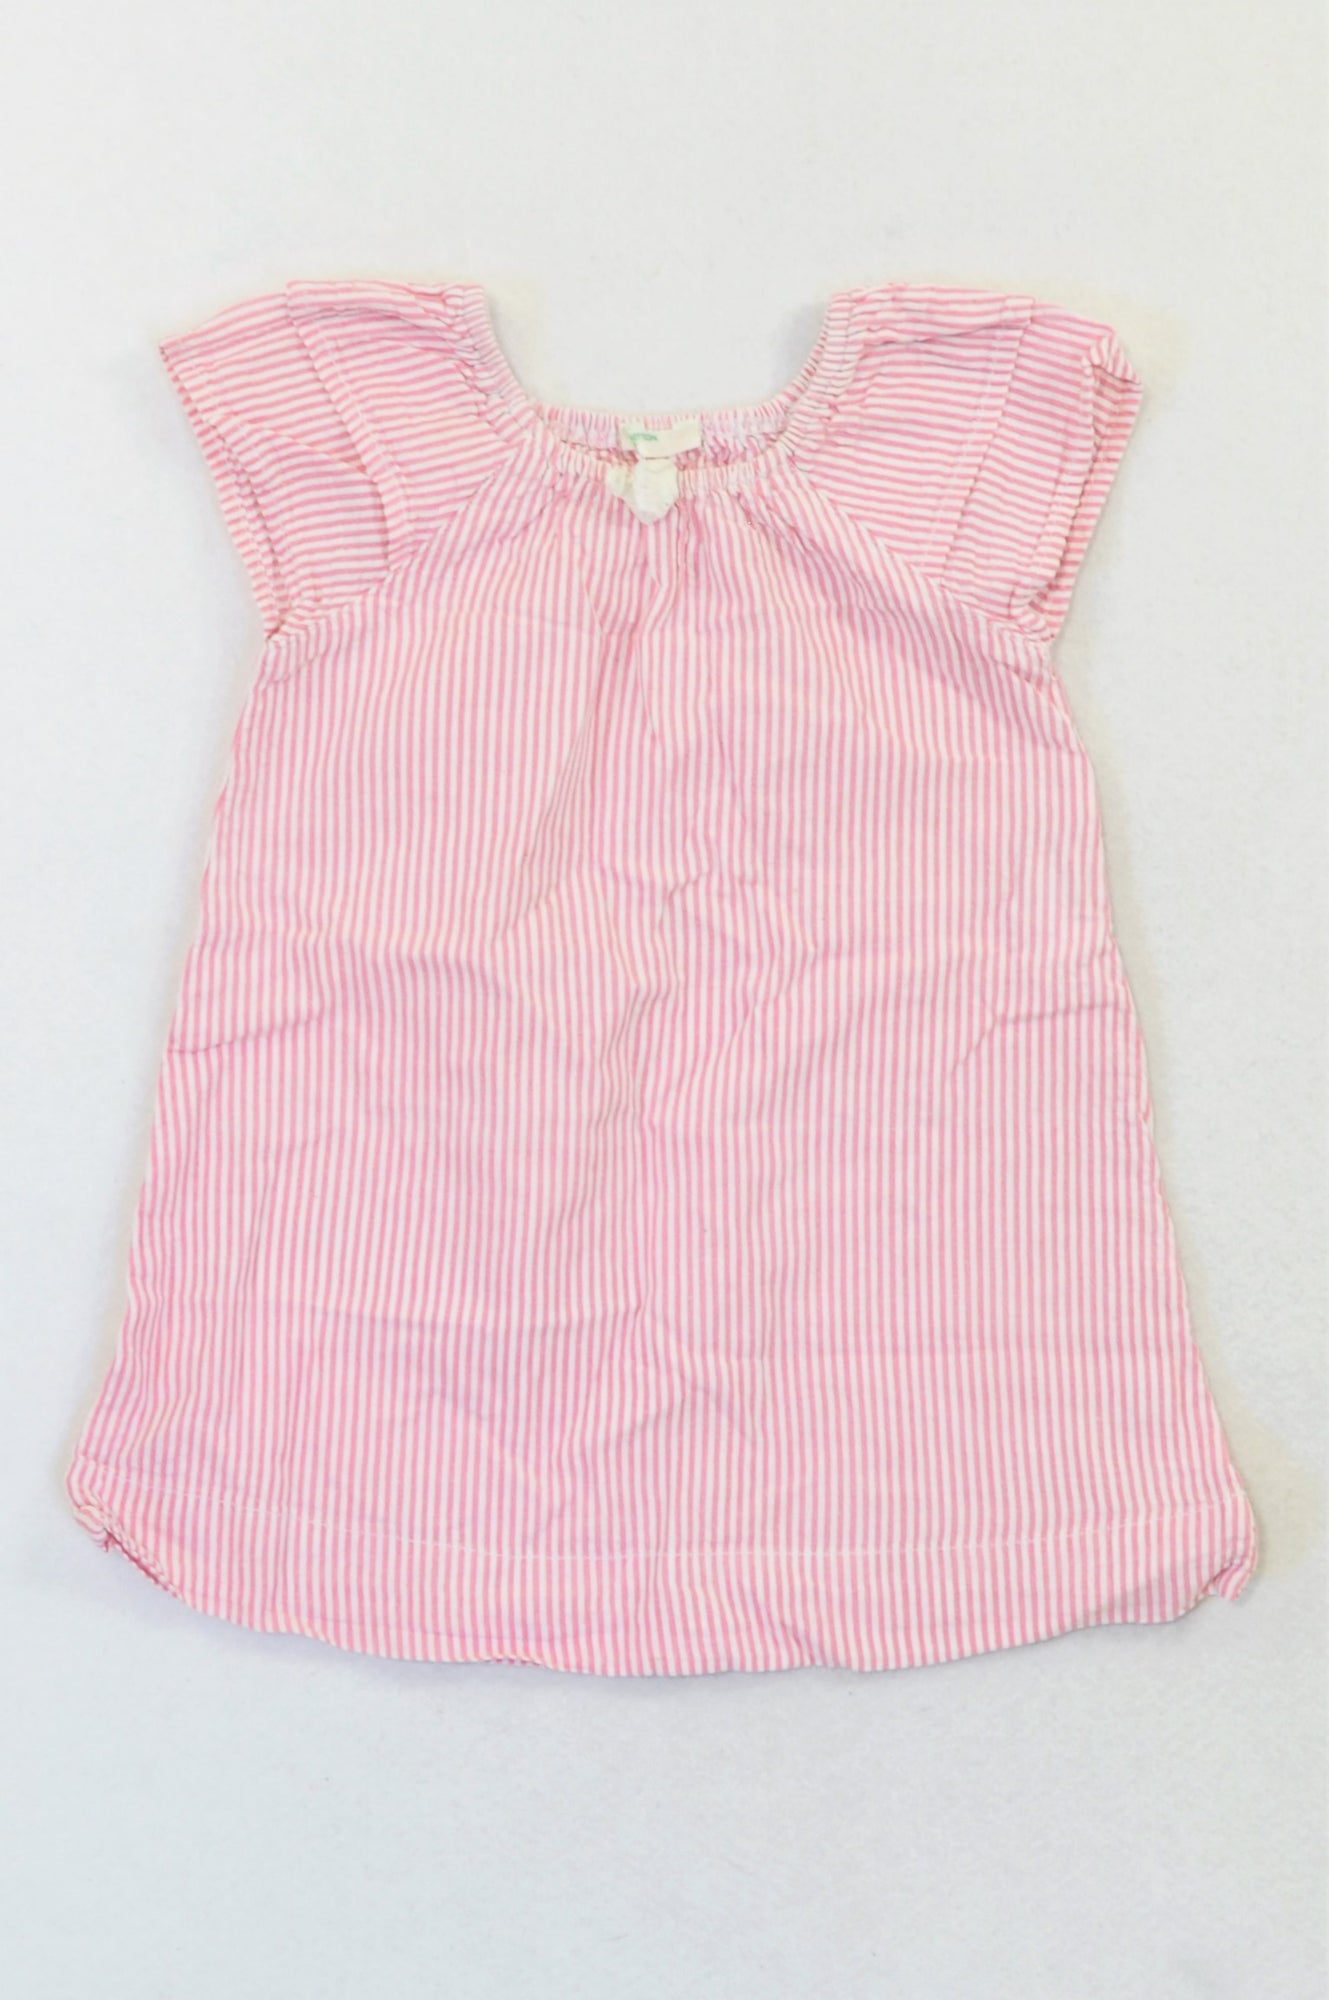 United Colours of Benetton Rose Pink Pinstripe Dress Girls 3-6 months